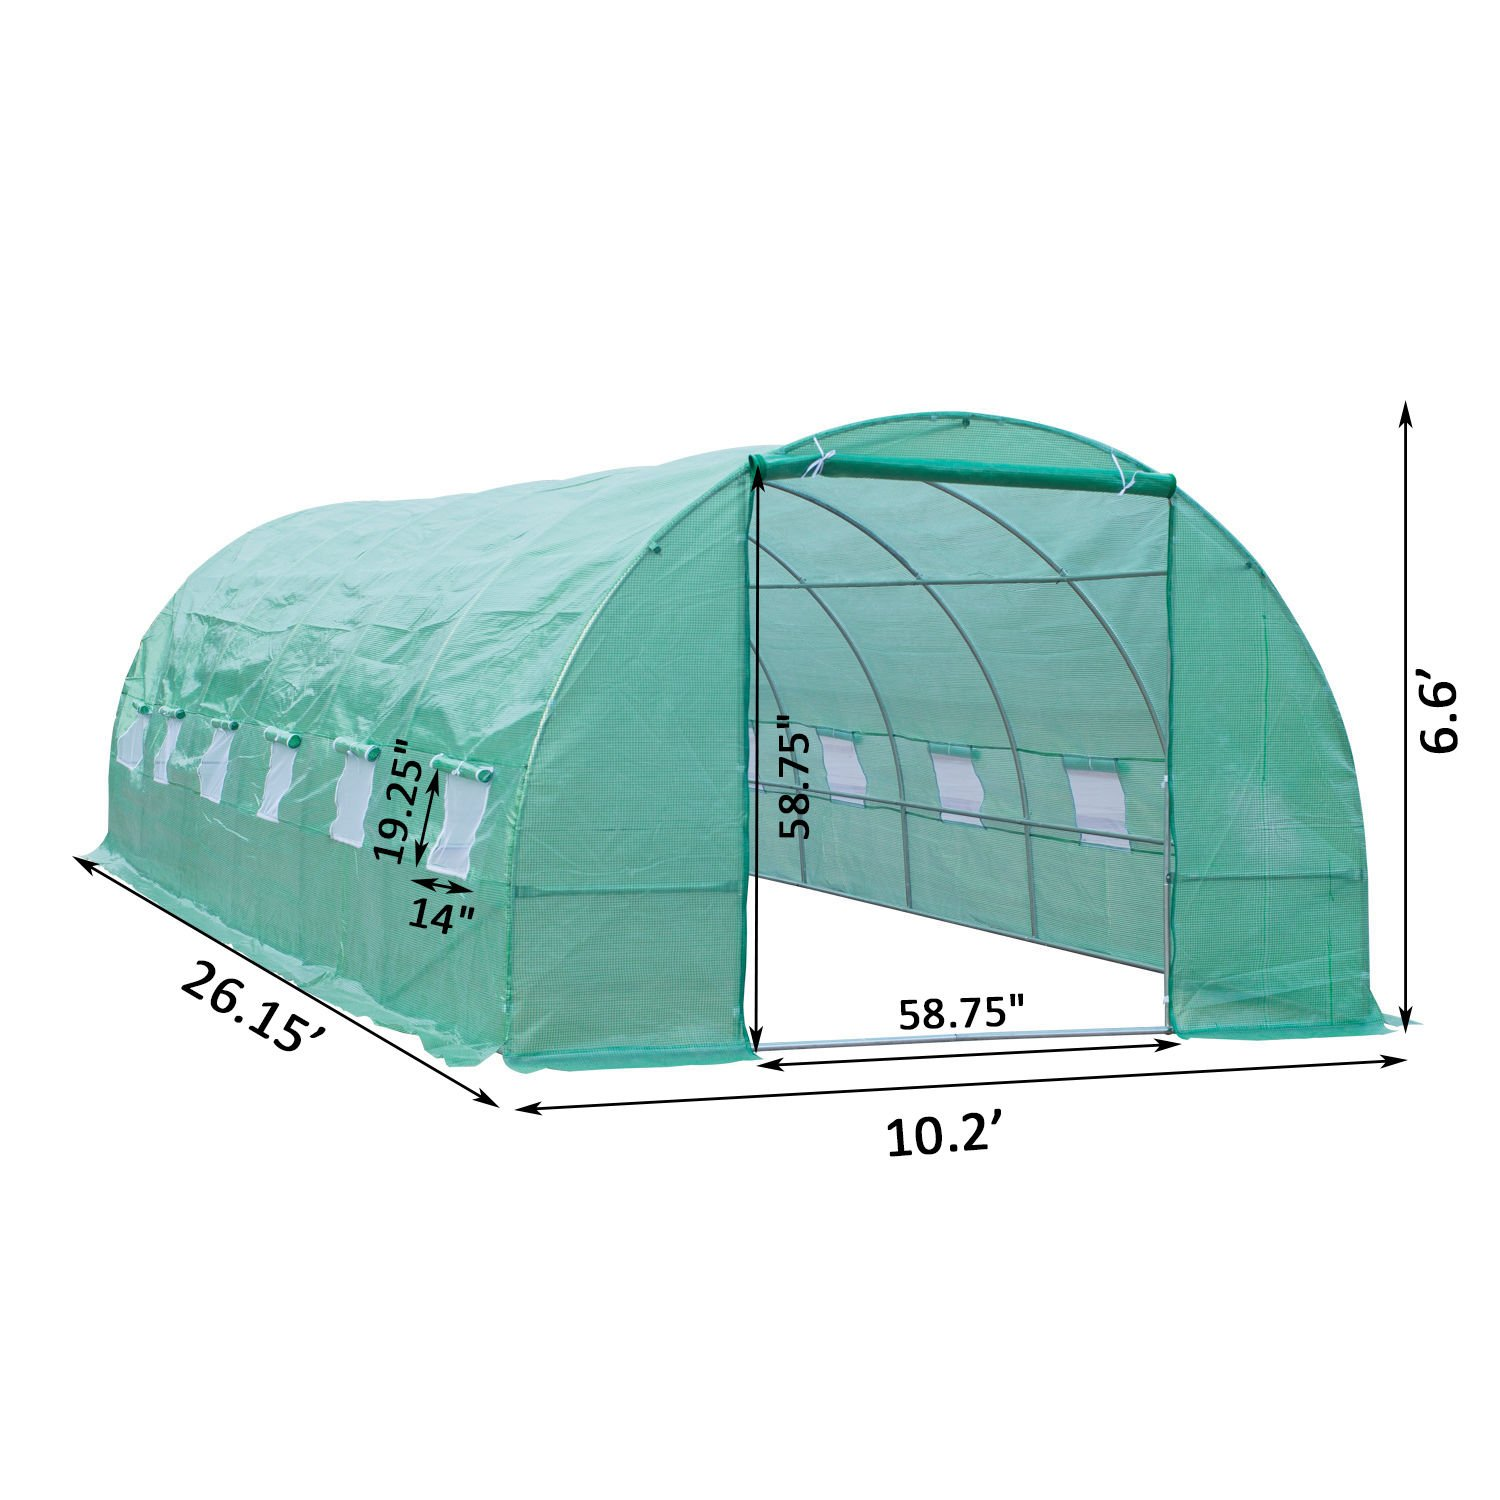 Outsunny 26' x 10' x 7' Portable Walk-in Garden Greenhouse - Deep Green by Outsunny (Image #6)